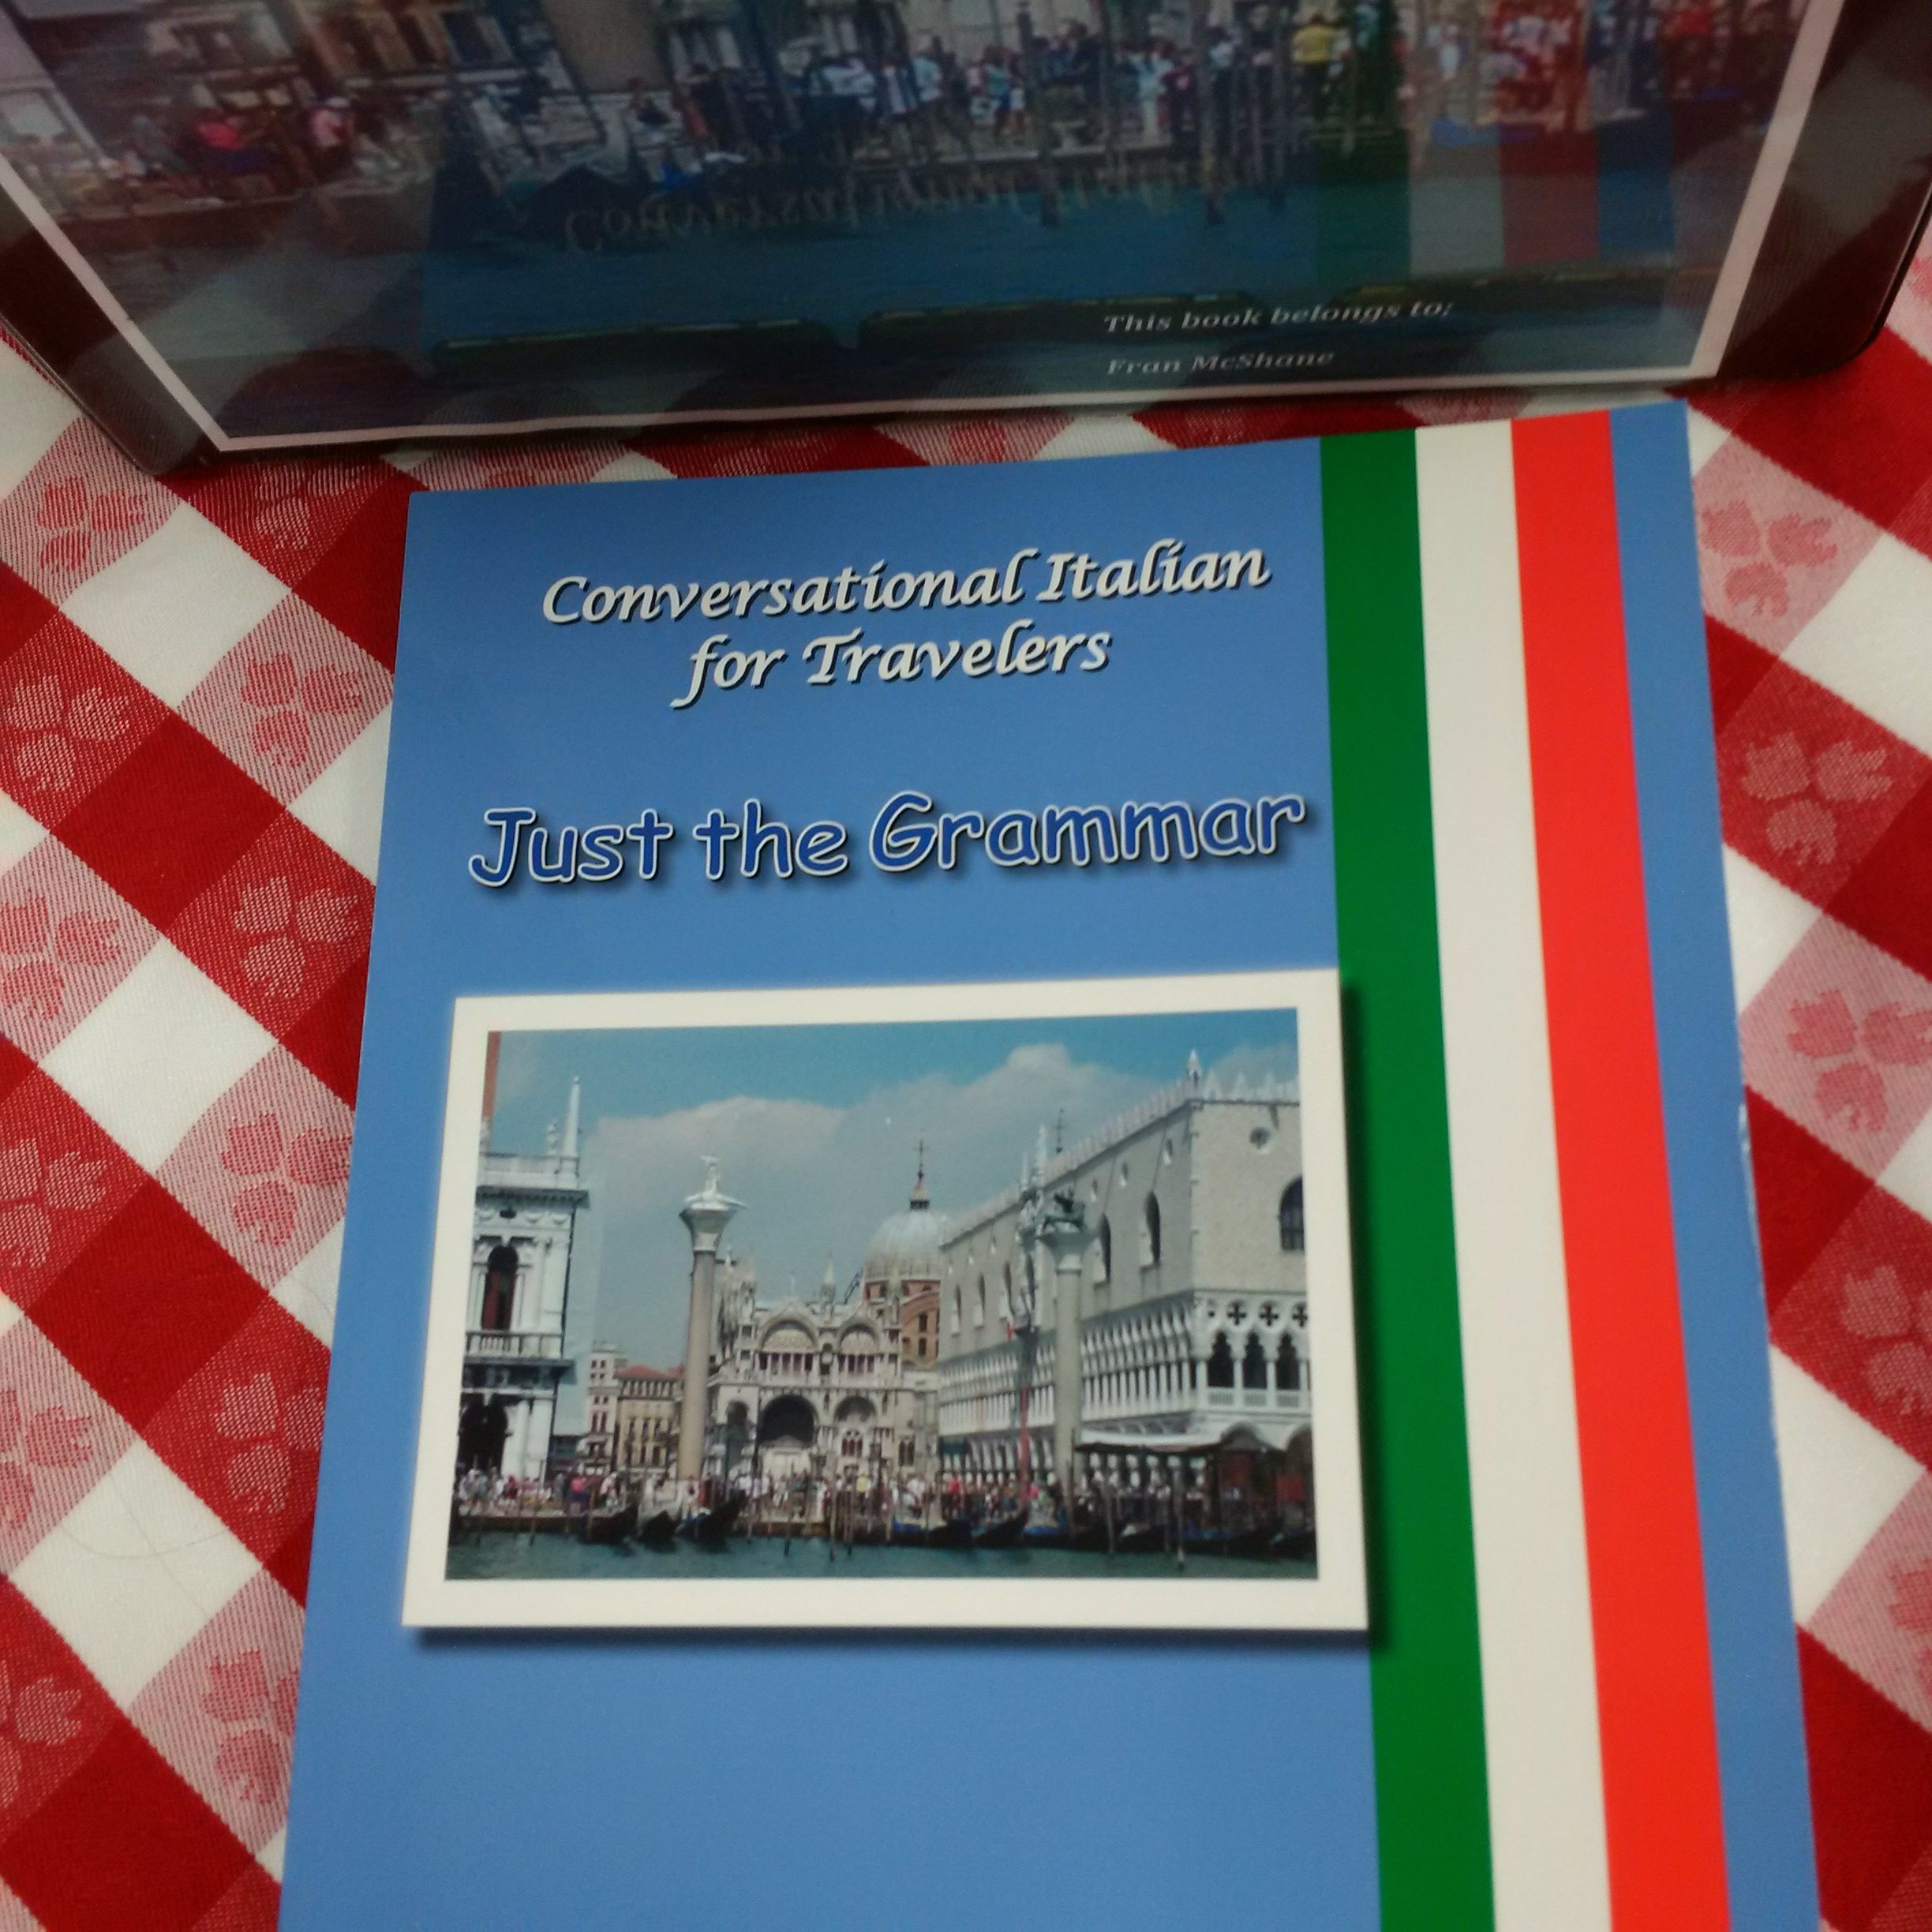 Italian Subjunctive (Part 6): Situations for Italian Adjective Clauses and Comparisons